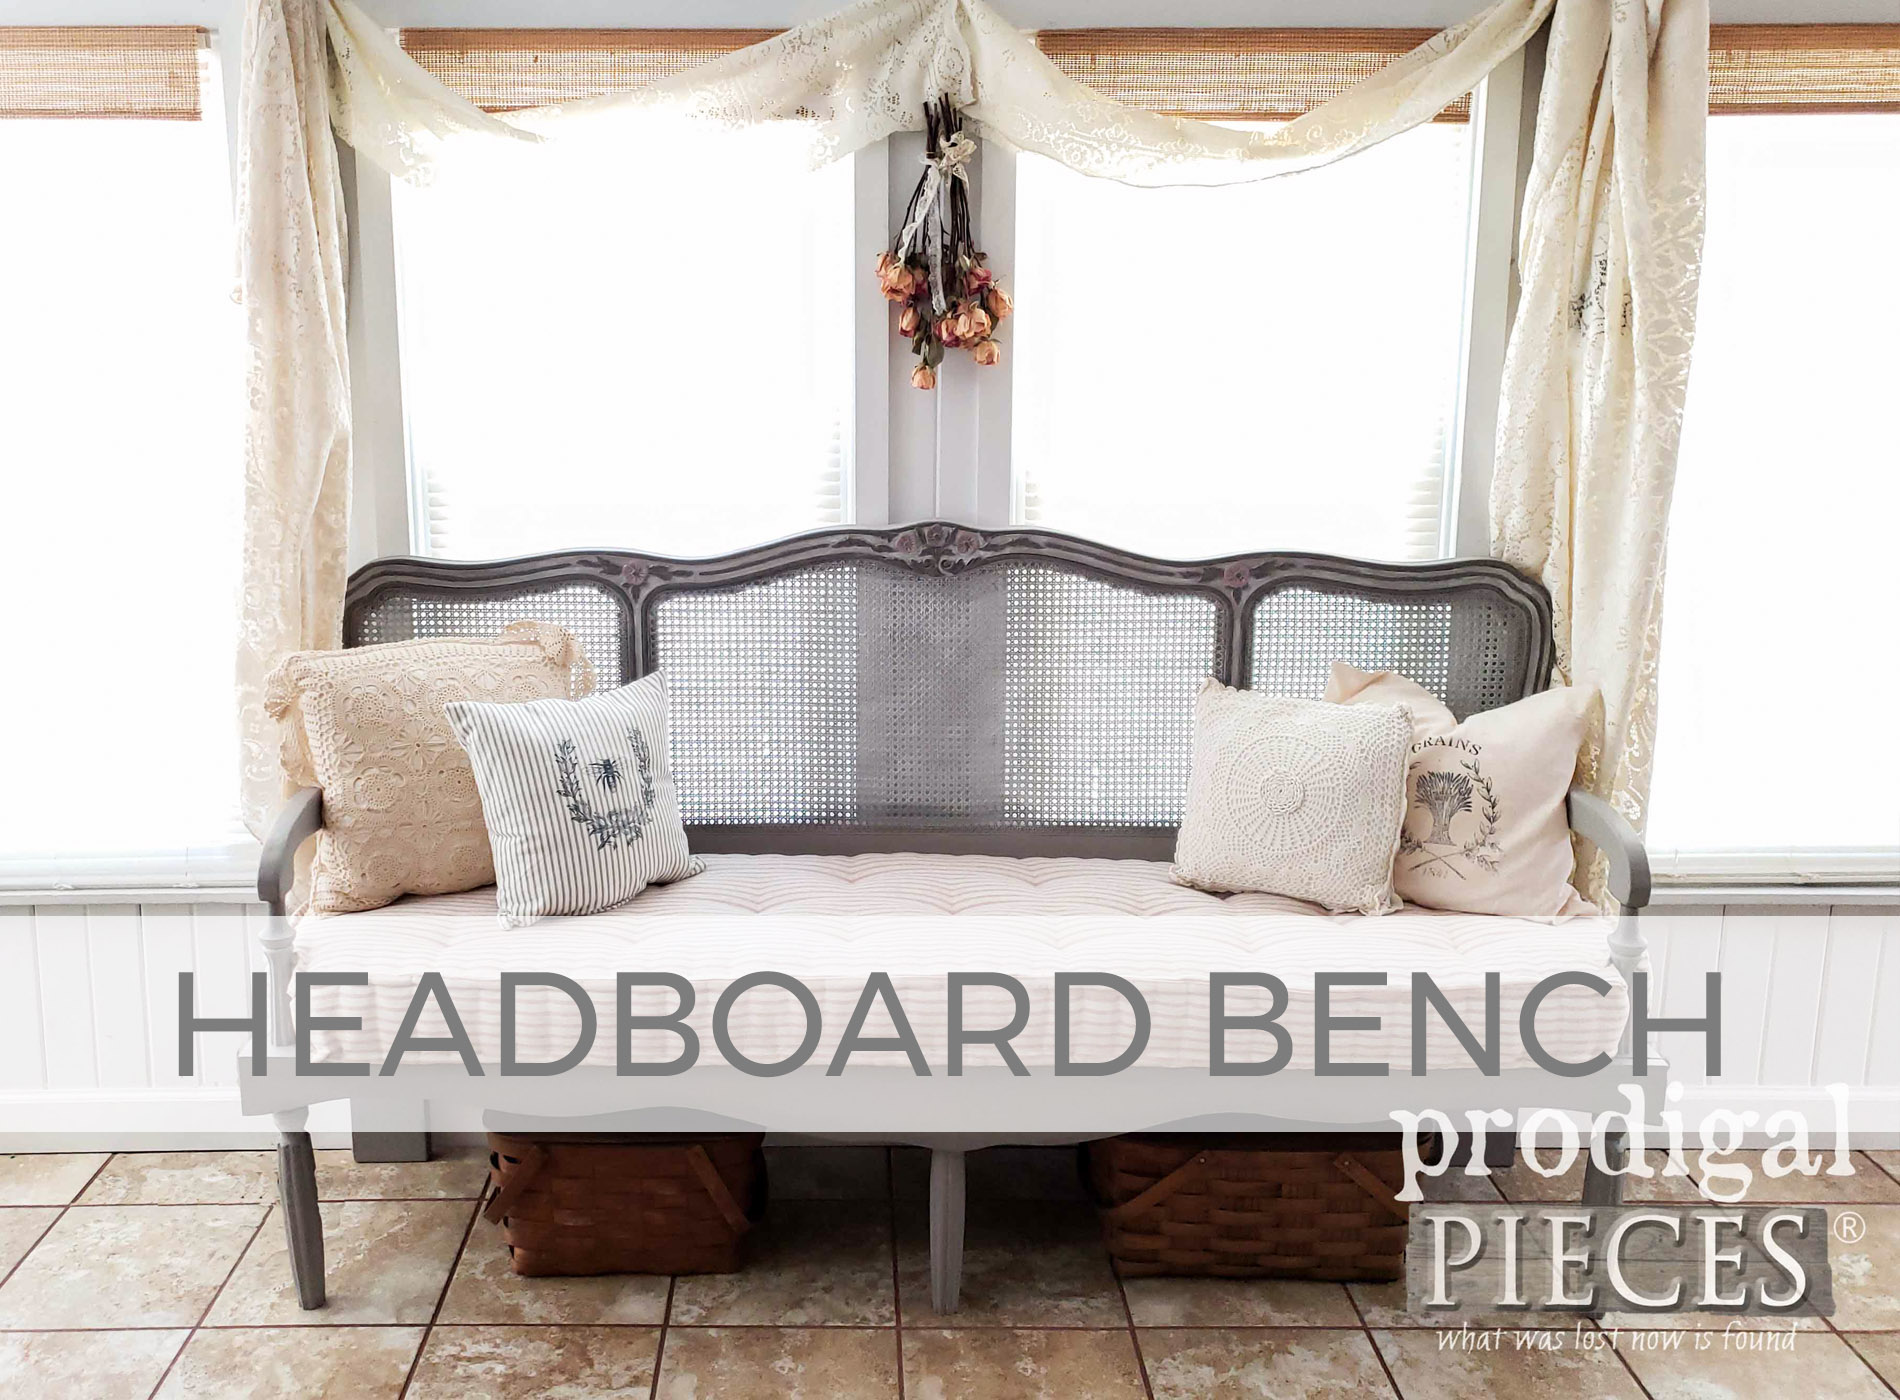 Custom French Provincial Headboard Bench with Tufted French Mattress by Larissa of Prodigal Pieces | prodigalpieces.com